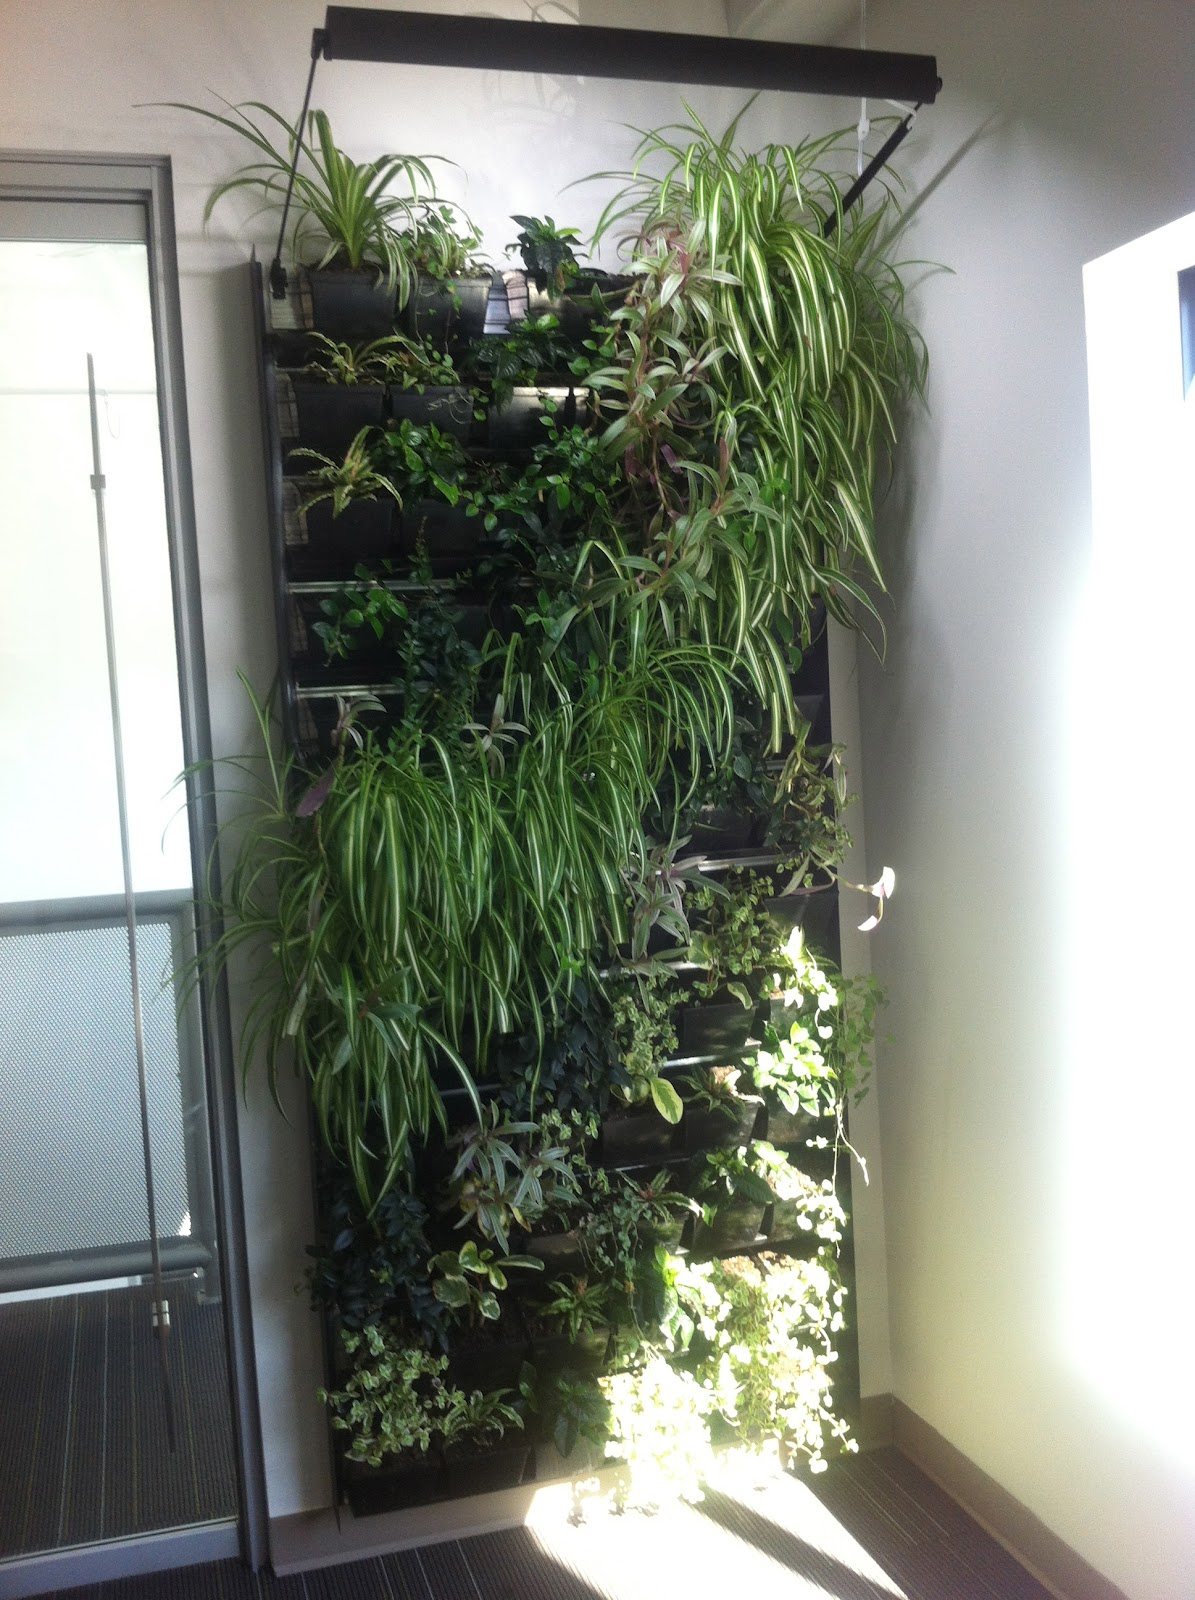 Tiffany munsey september 2012 Indoor living wall herb garden